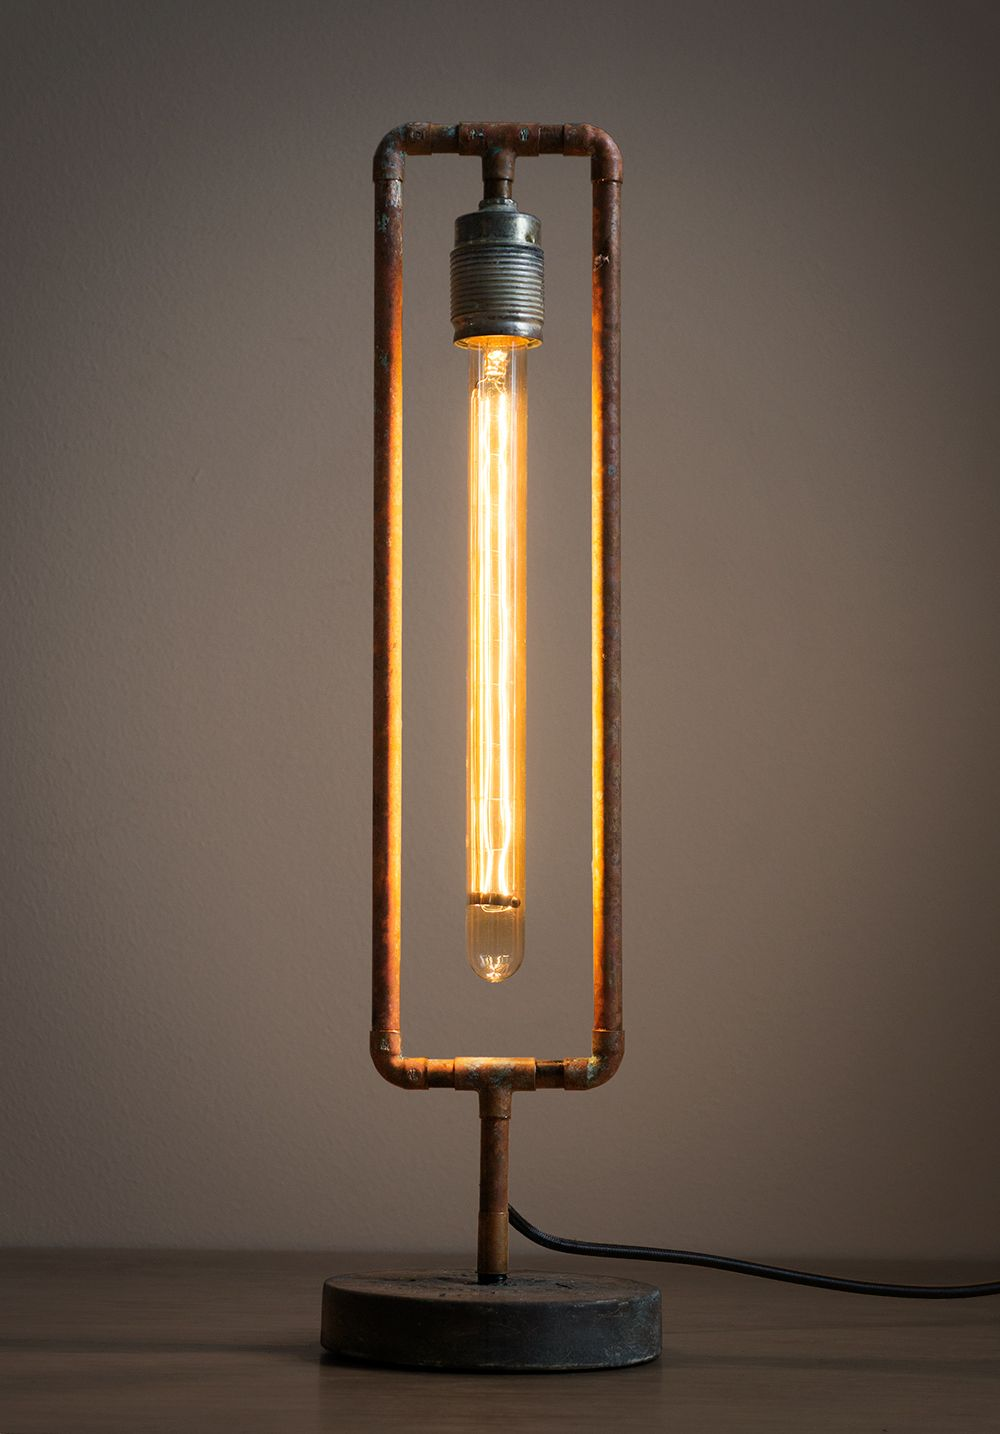 Lange Lampen This Lamp Is Build From Brass Pipes And A 30 Cm Long Light Bulb